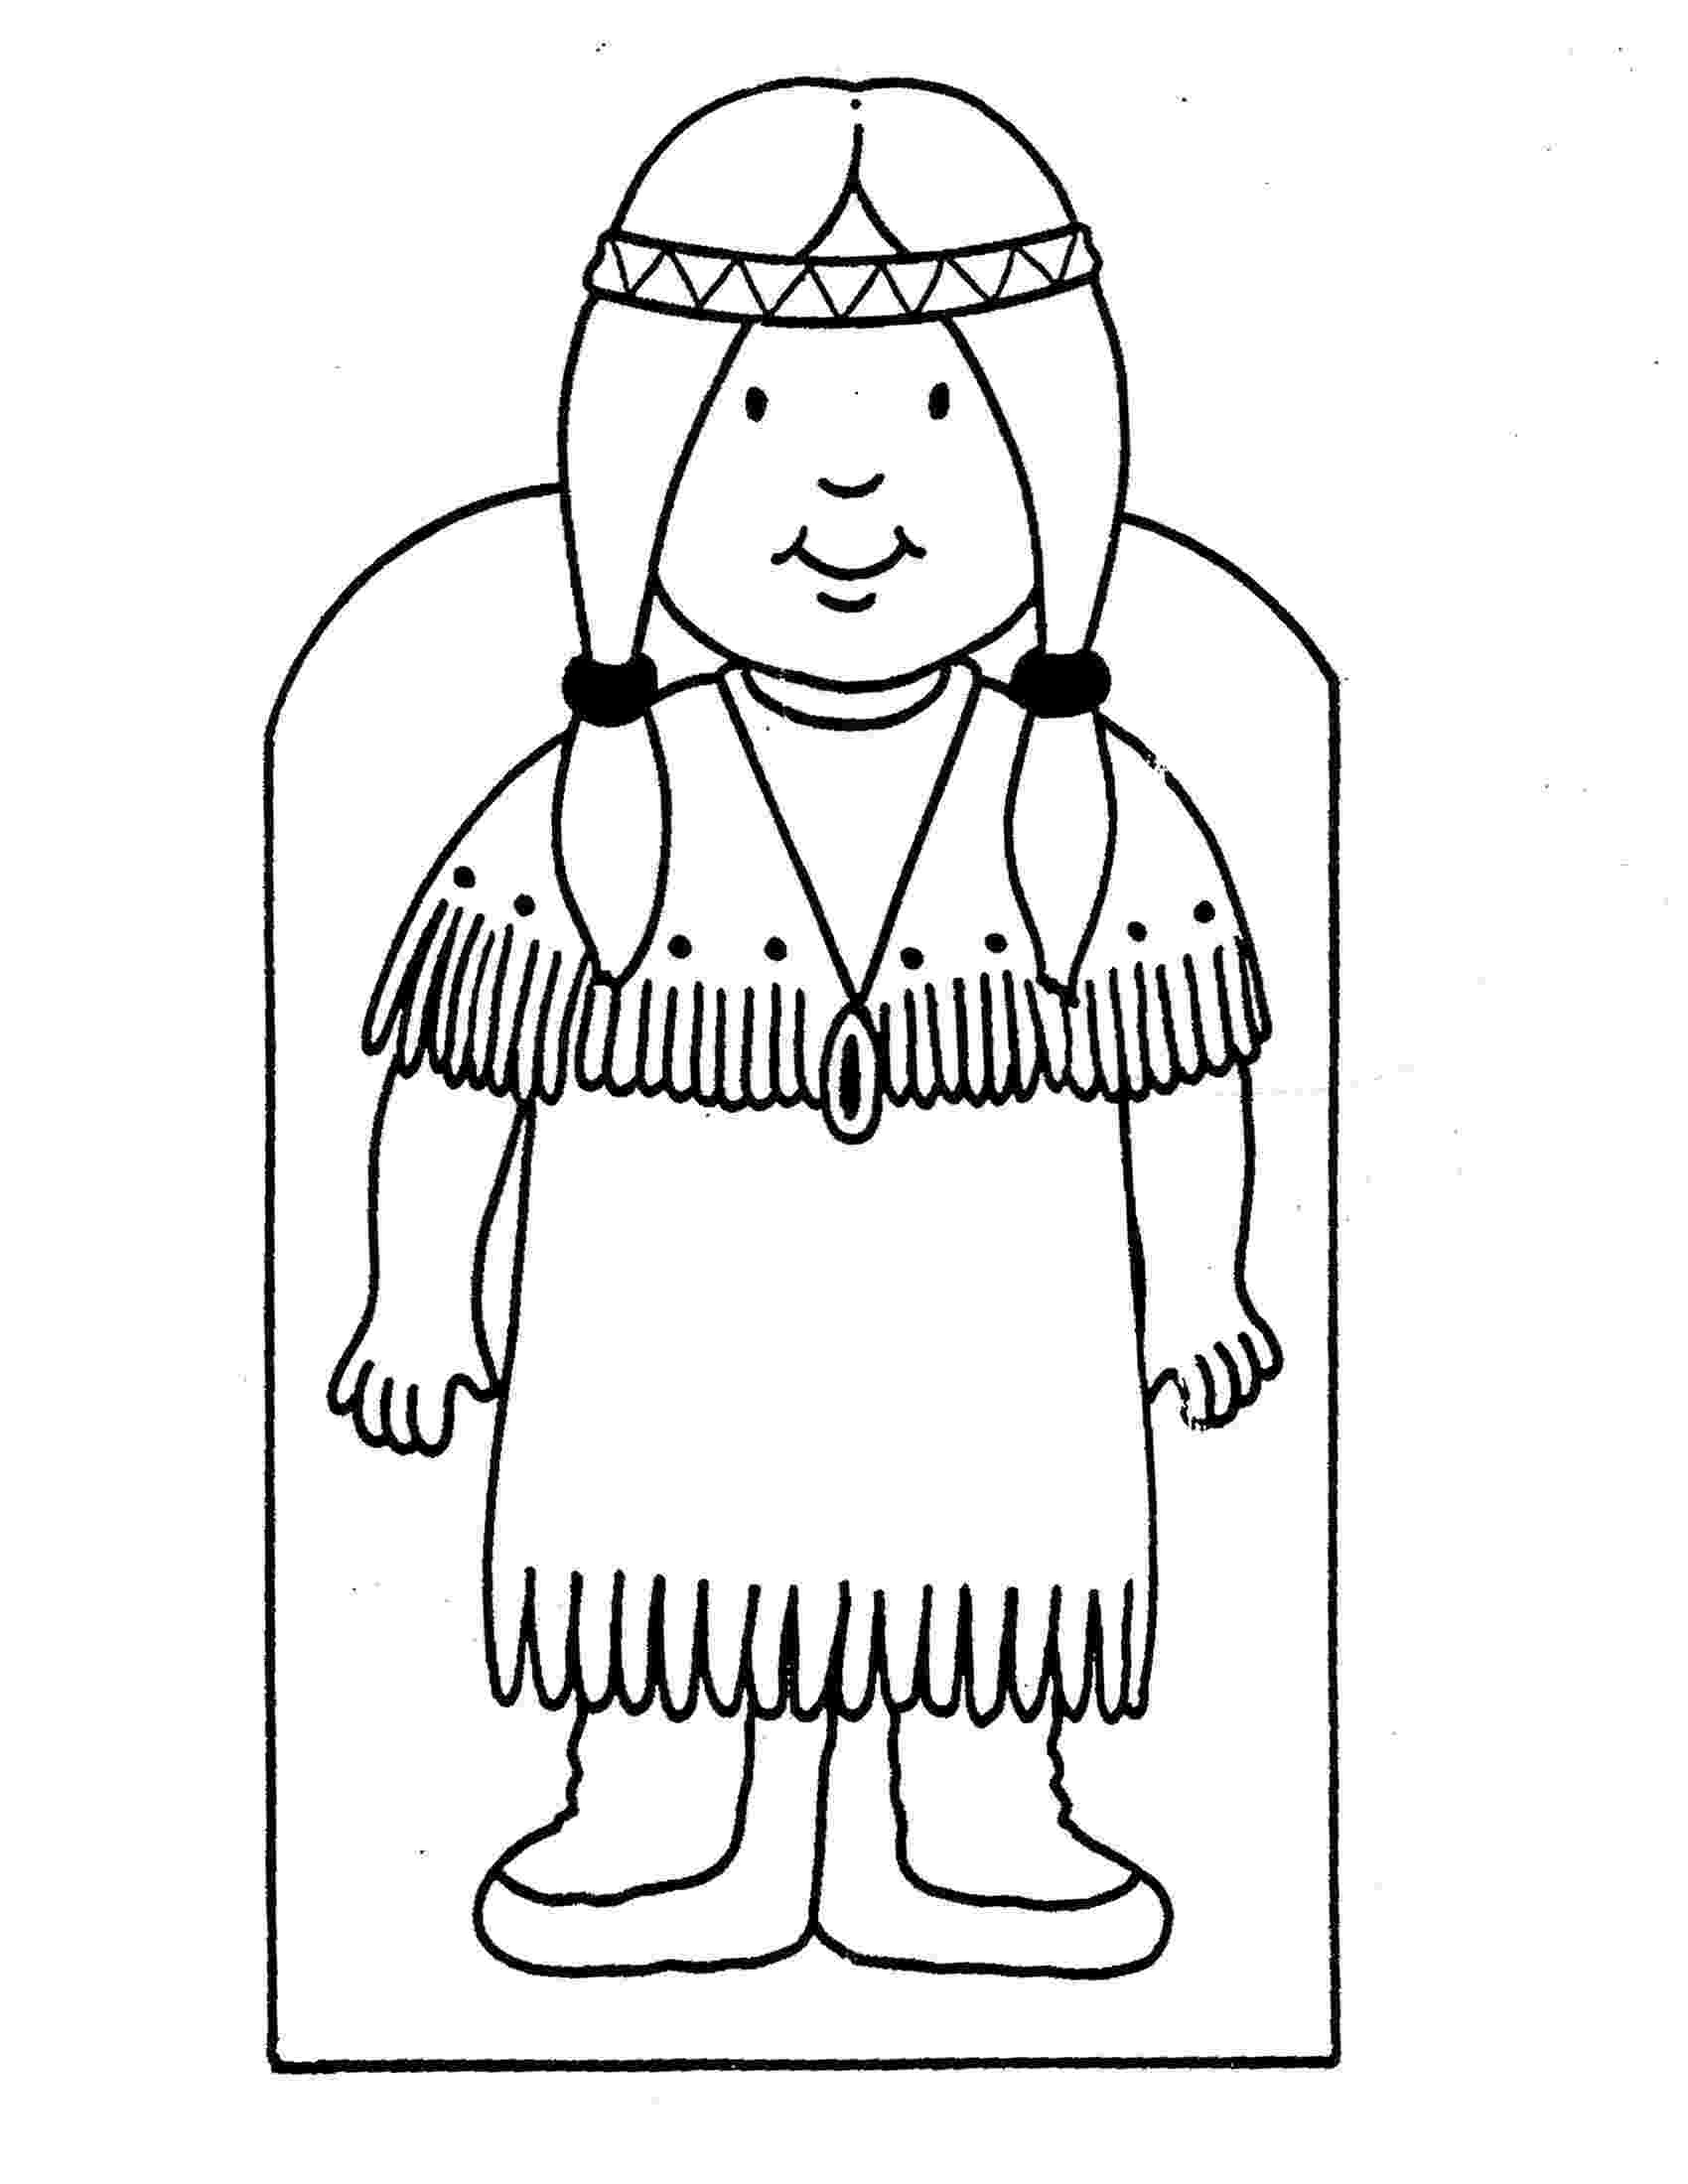 indians coloring pages indian coloring pages best coloring pages for kids pages coloring indians